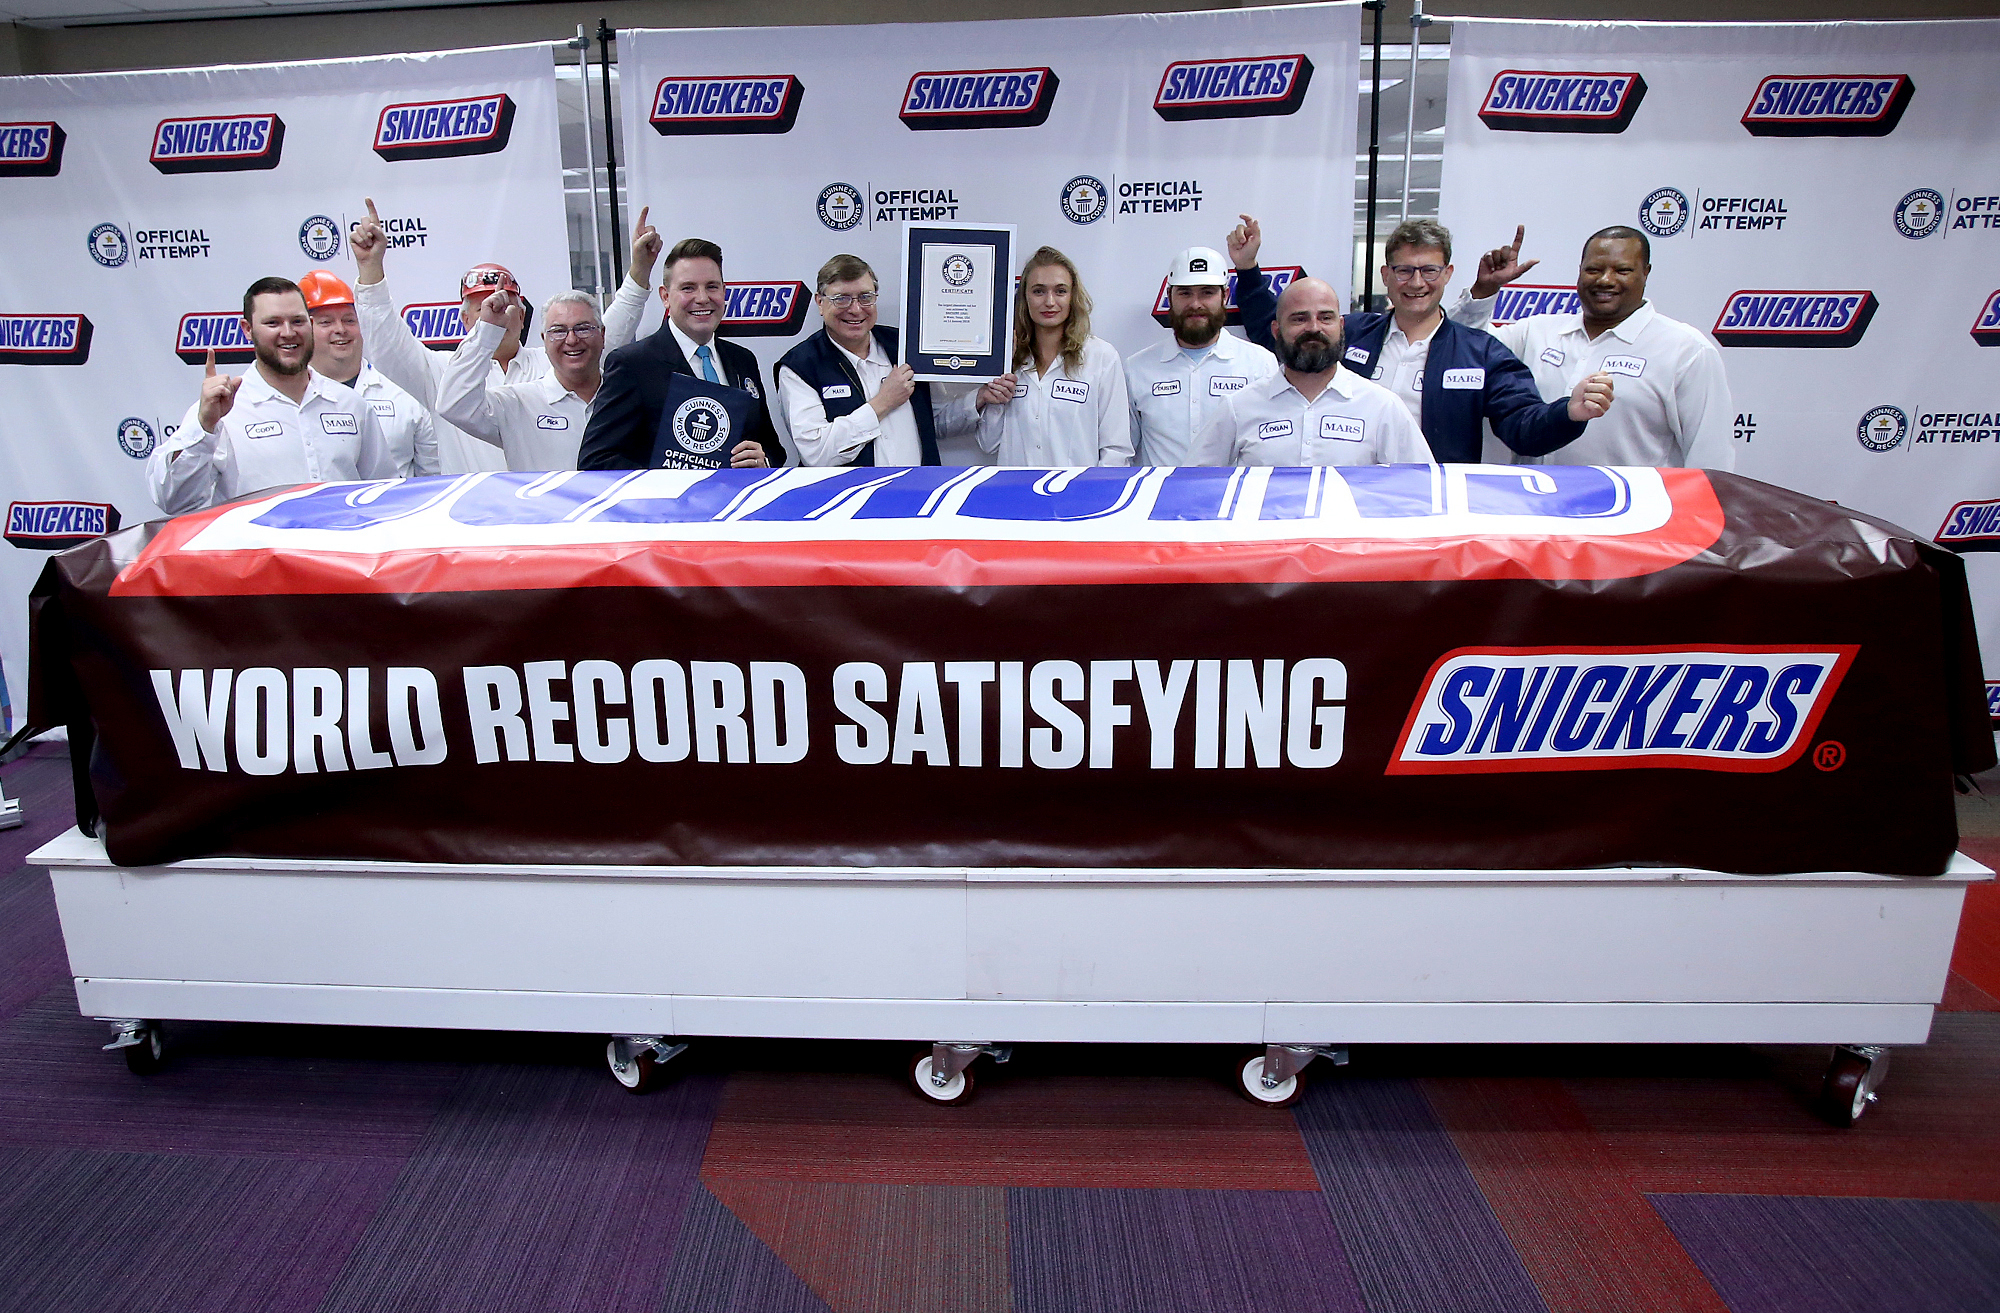 World's largest Snickers bar is the size of 43,000 single-size candy bars put together